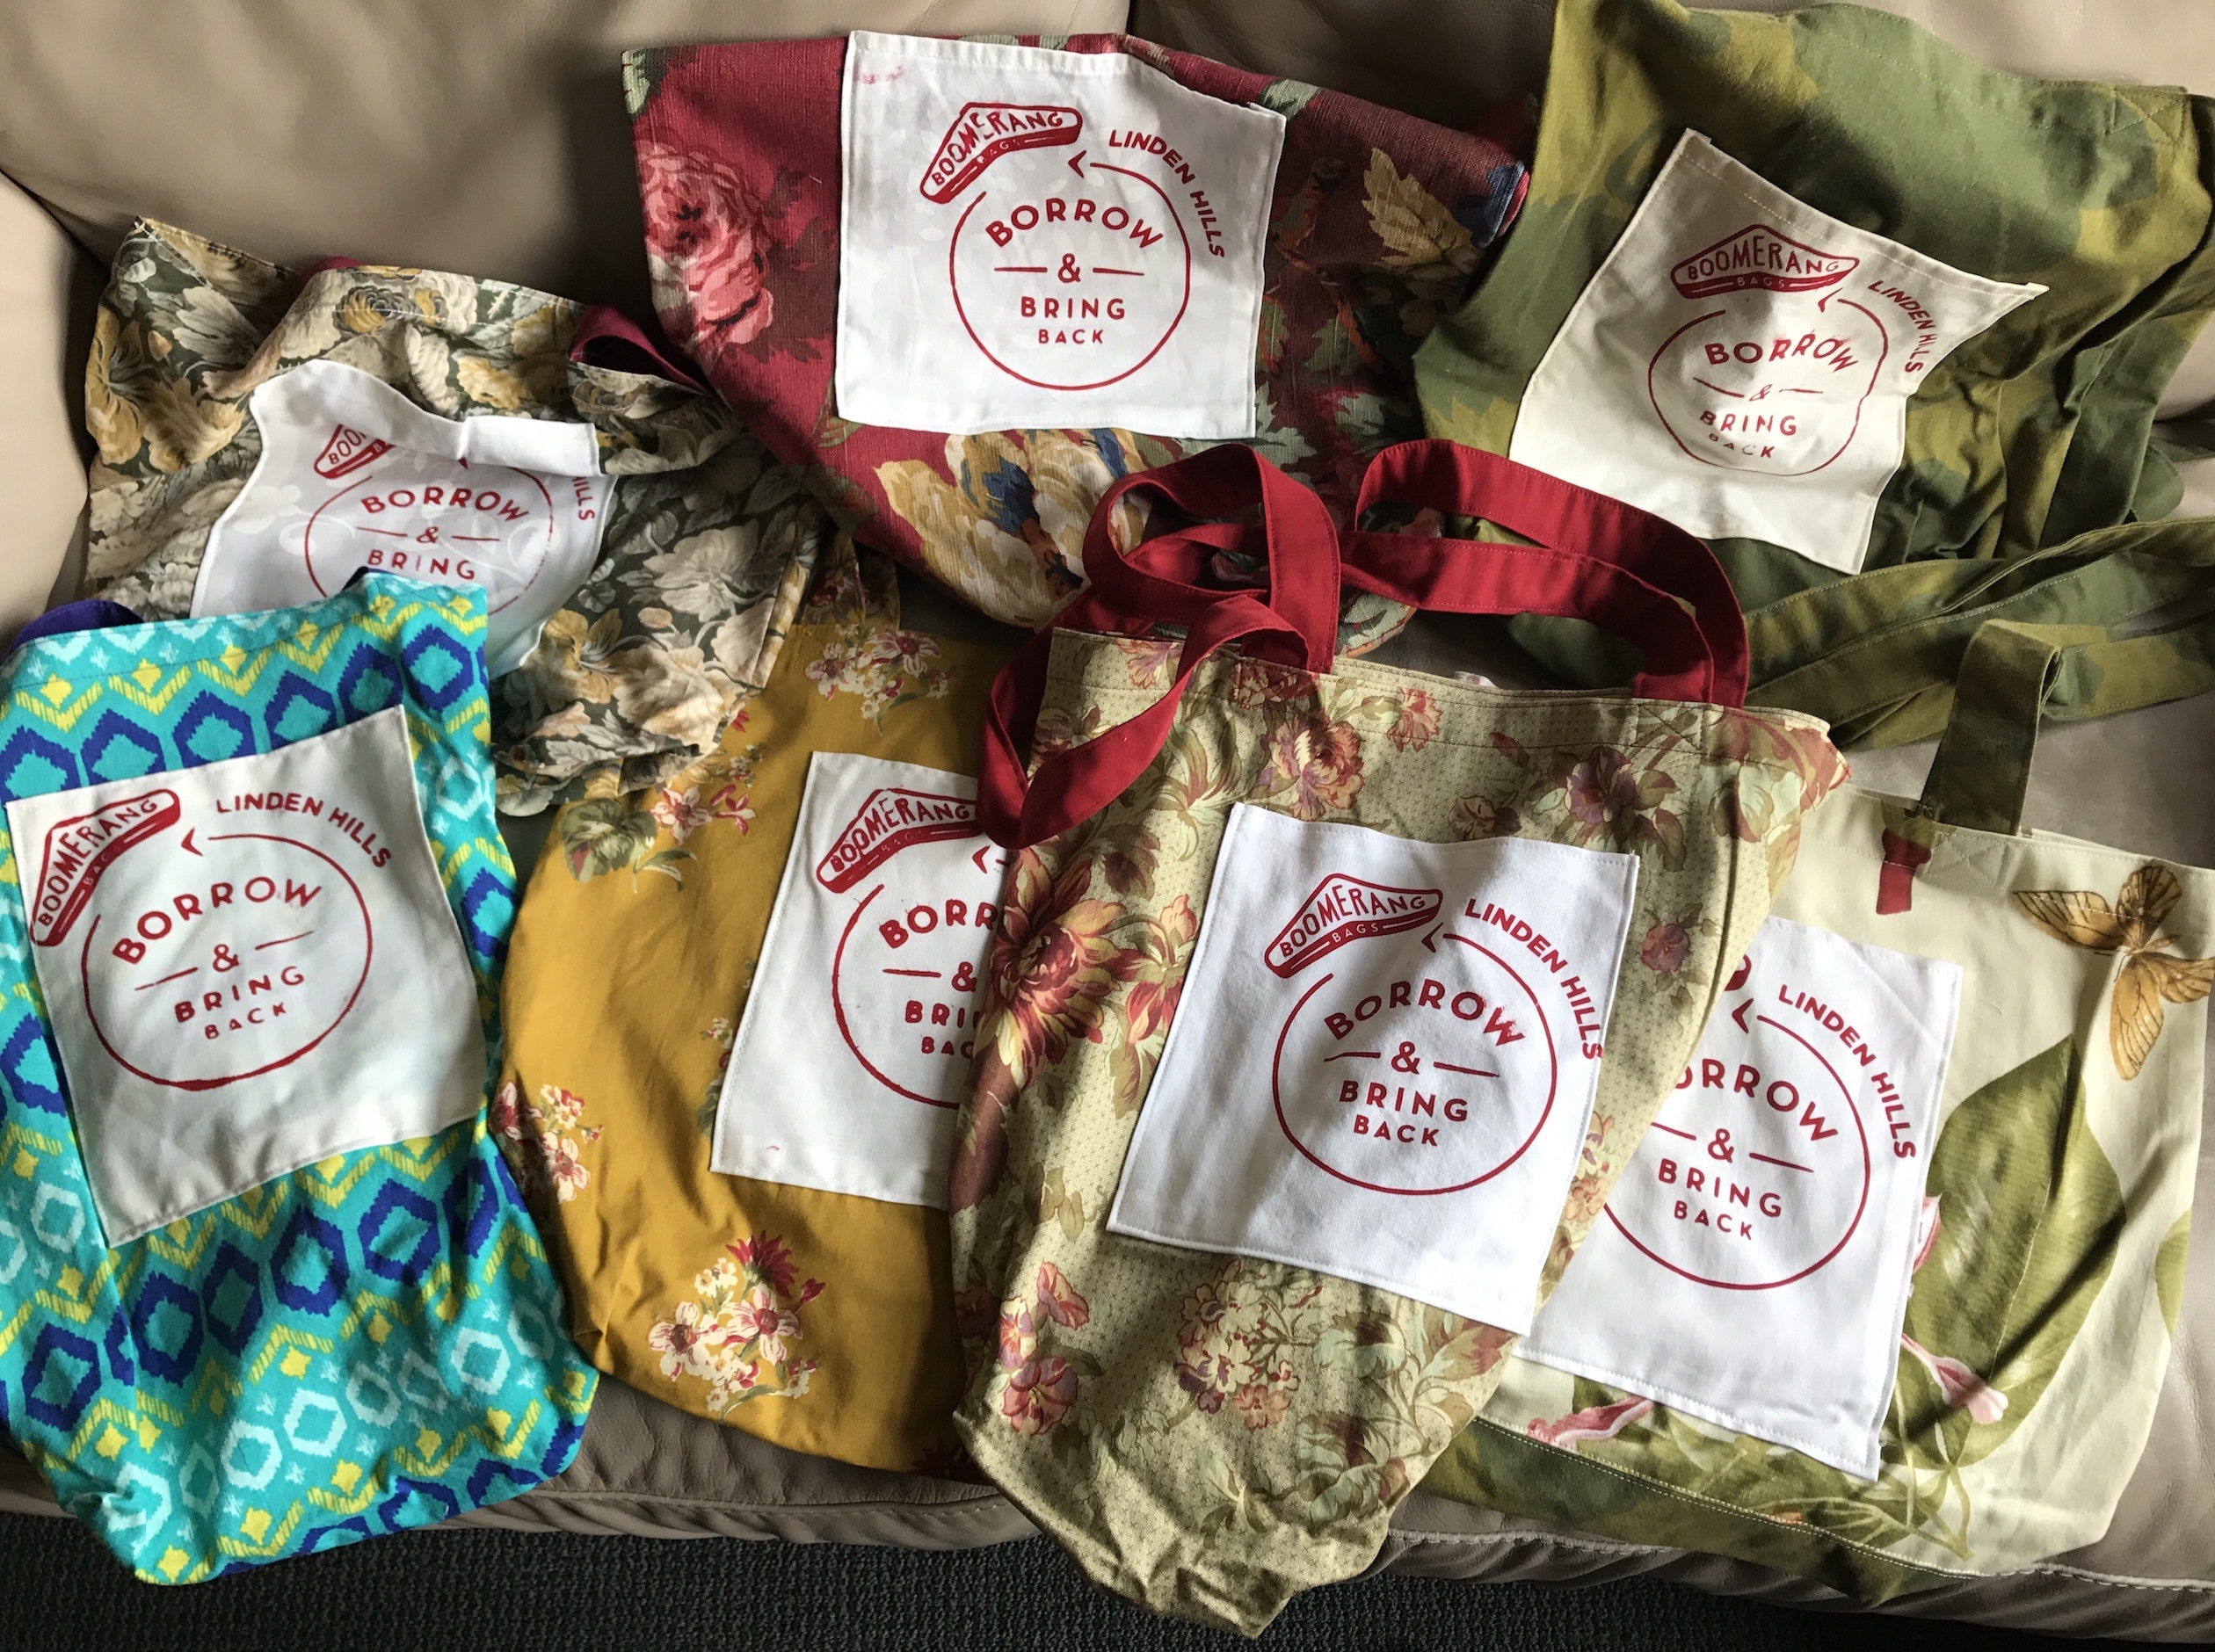 The founder of Minneapolis' Boomerang Bag program is looking to expand it to neighborhoods beyond Linden Hills. Submitted photo